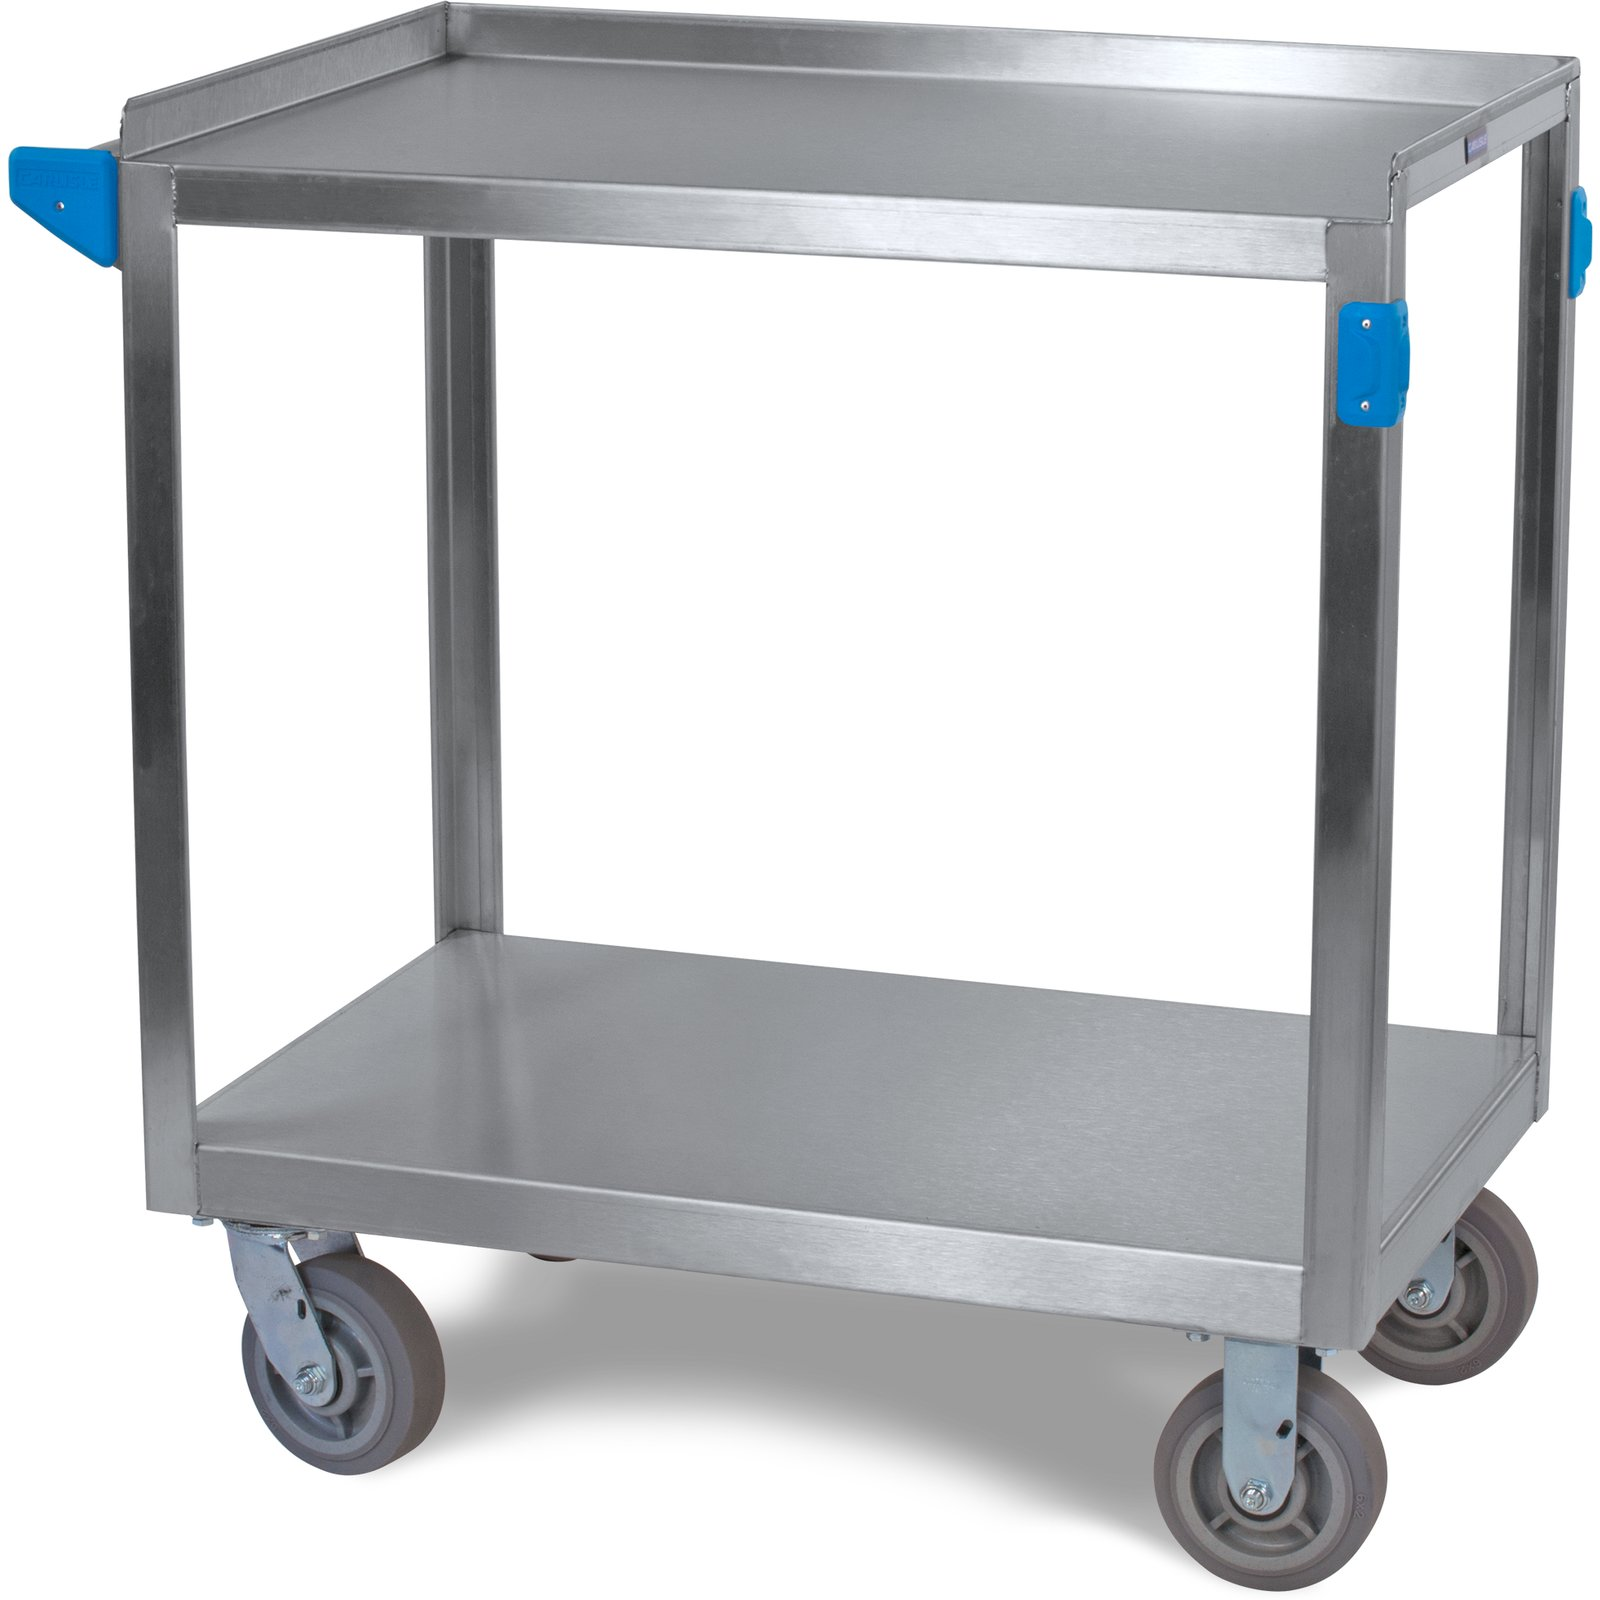 Uc7022133 2 Shelf Stainless Steel Utility Cart 700 Lb Capacity 21